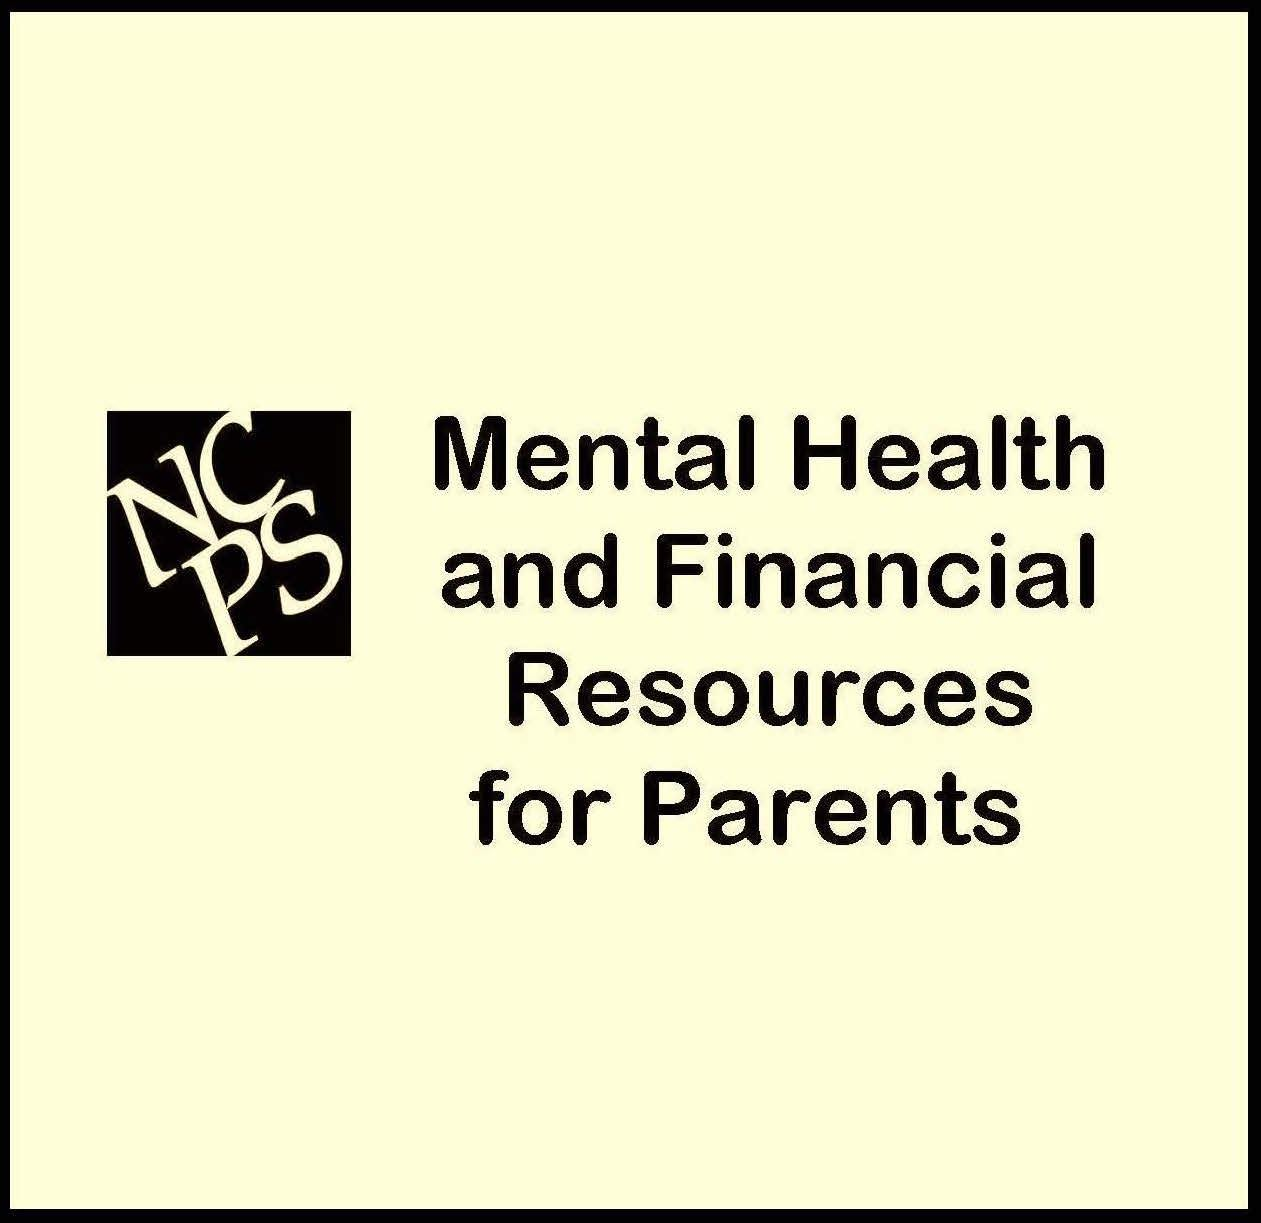 Mental Health and Financial Resources